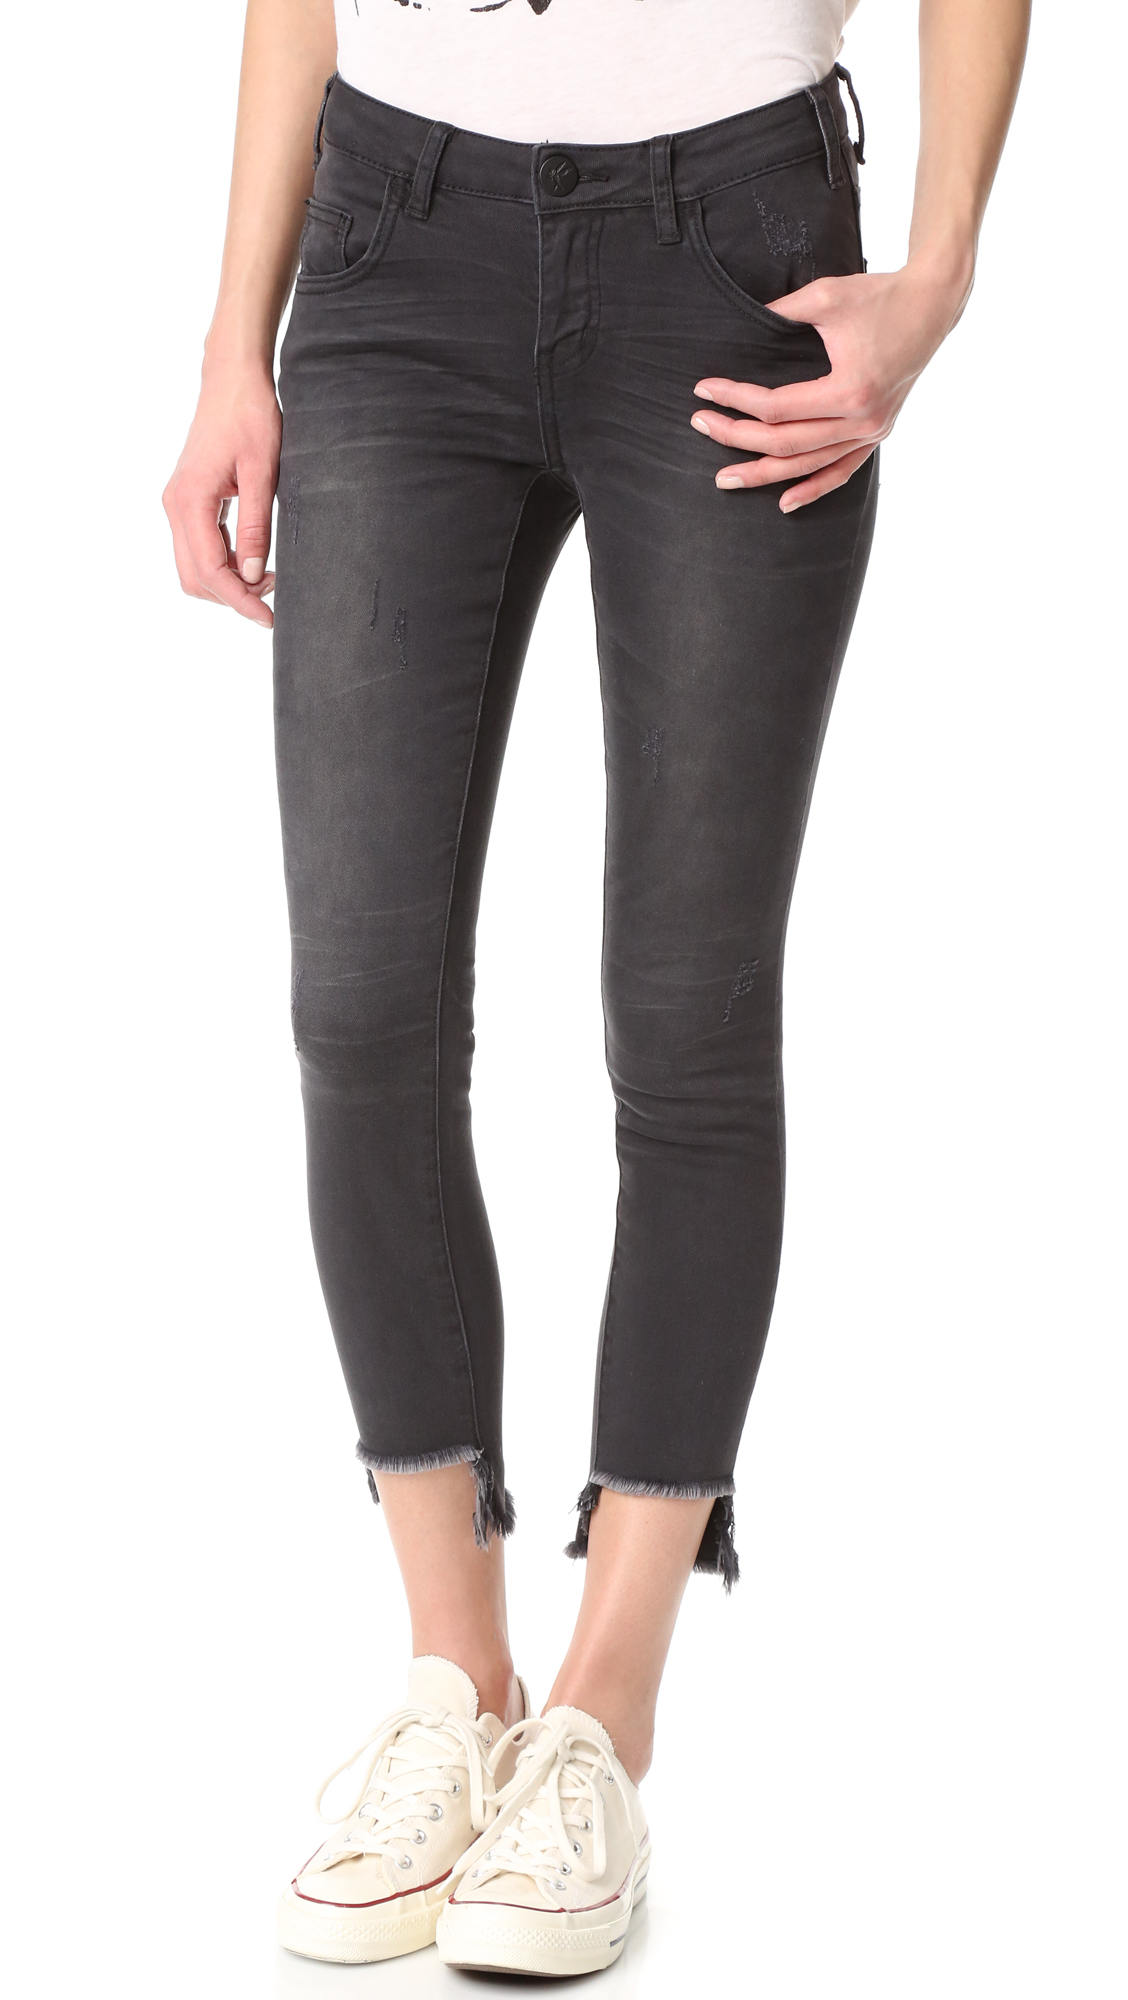 Edgy, dark wash One Teaspoon jeans with light fading and frayed, step hem cuffs. 5 pocket styling. Button closure and zip fly. Fabric: Stretch denim. 98% cotton/2% elastane. Wash cold. Imported, China. Measurements Rise: 7.75in / 20cm Inseam: 24.75in / 63